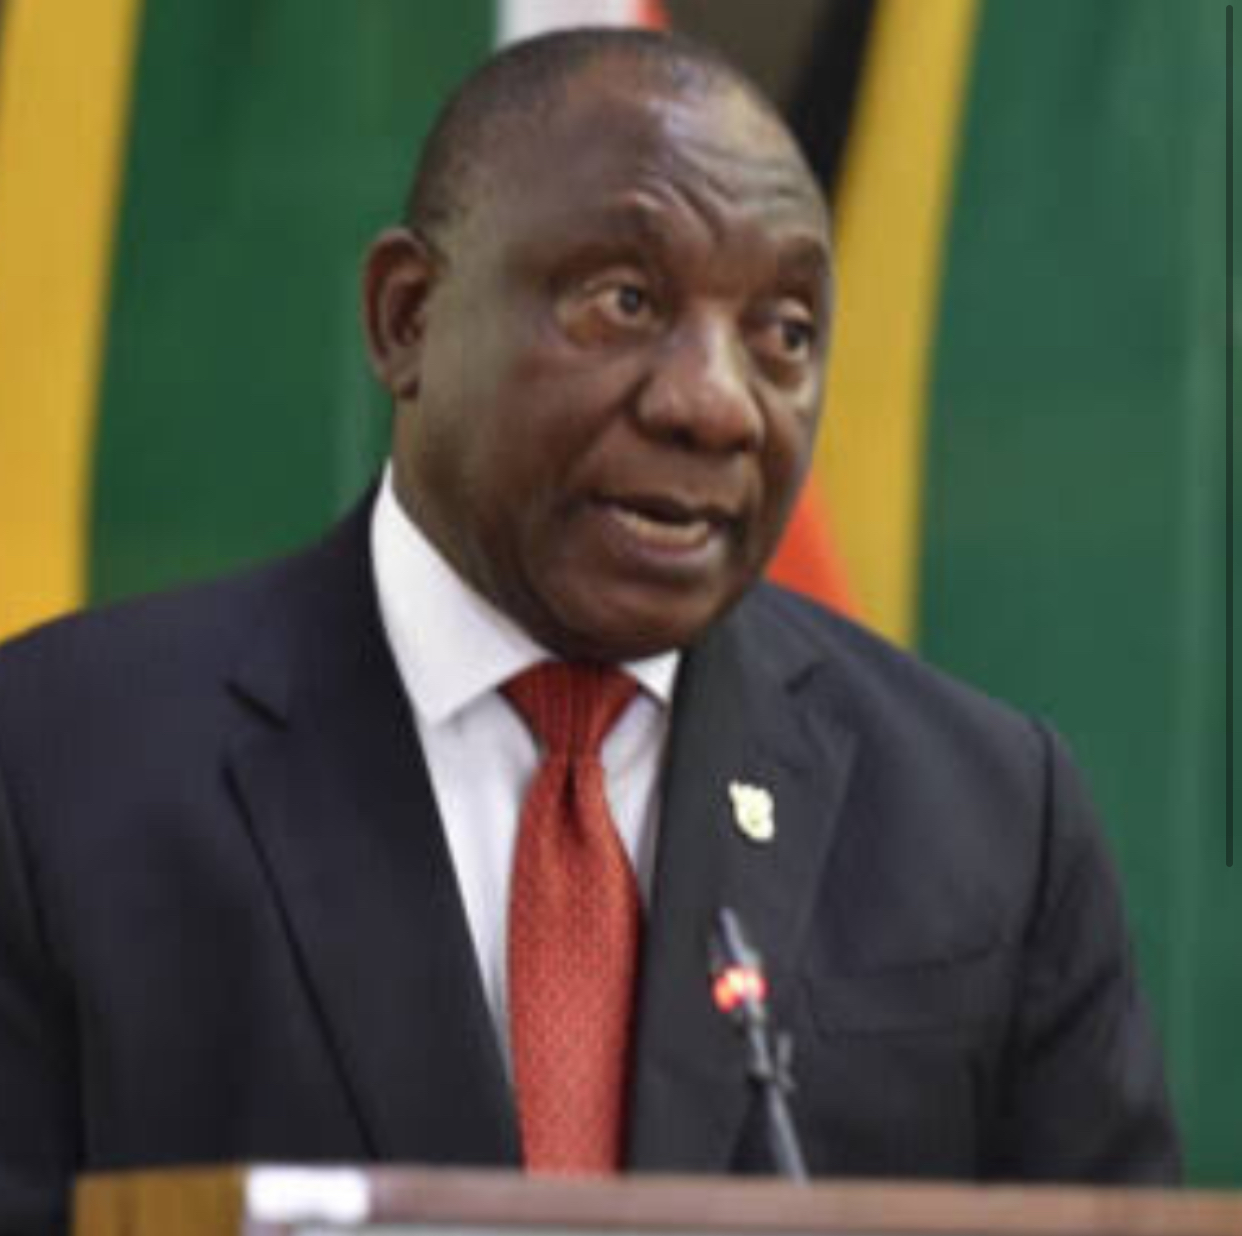 CoronaVirus: Ramaphosa imposes travel ban, shutdown schools, Mswati reluctant to take decisive action